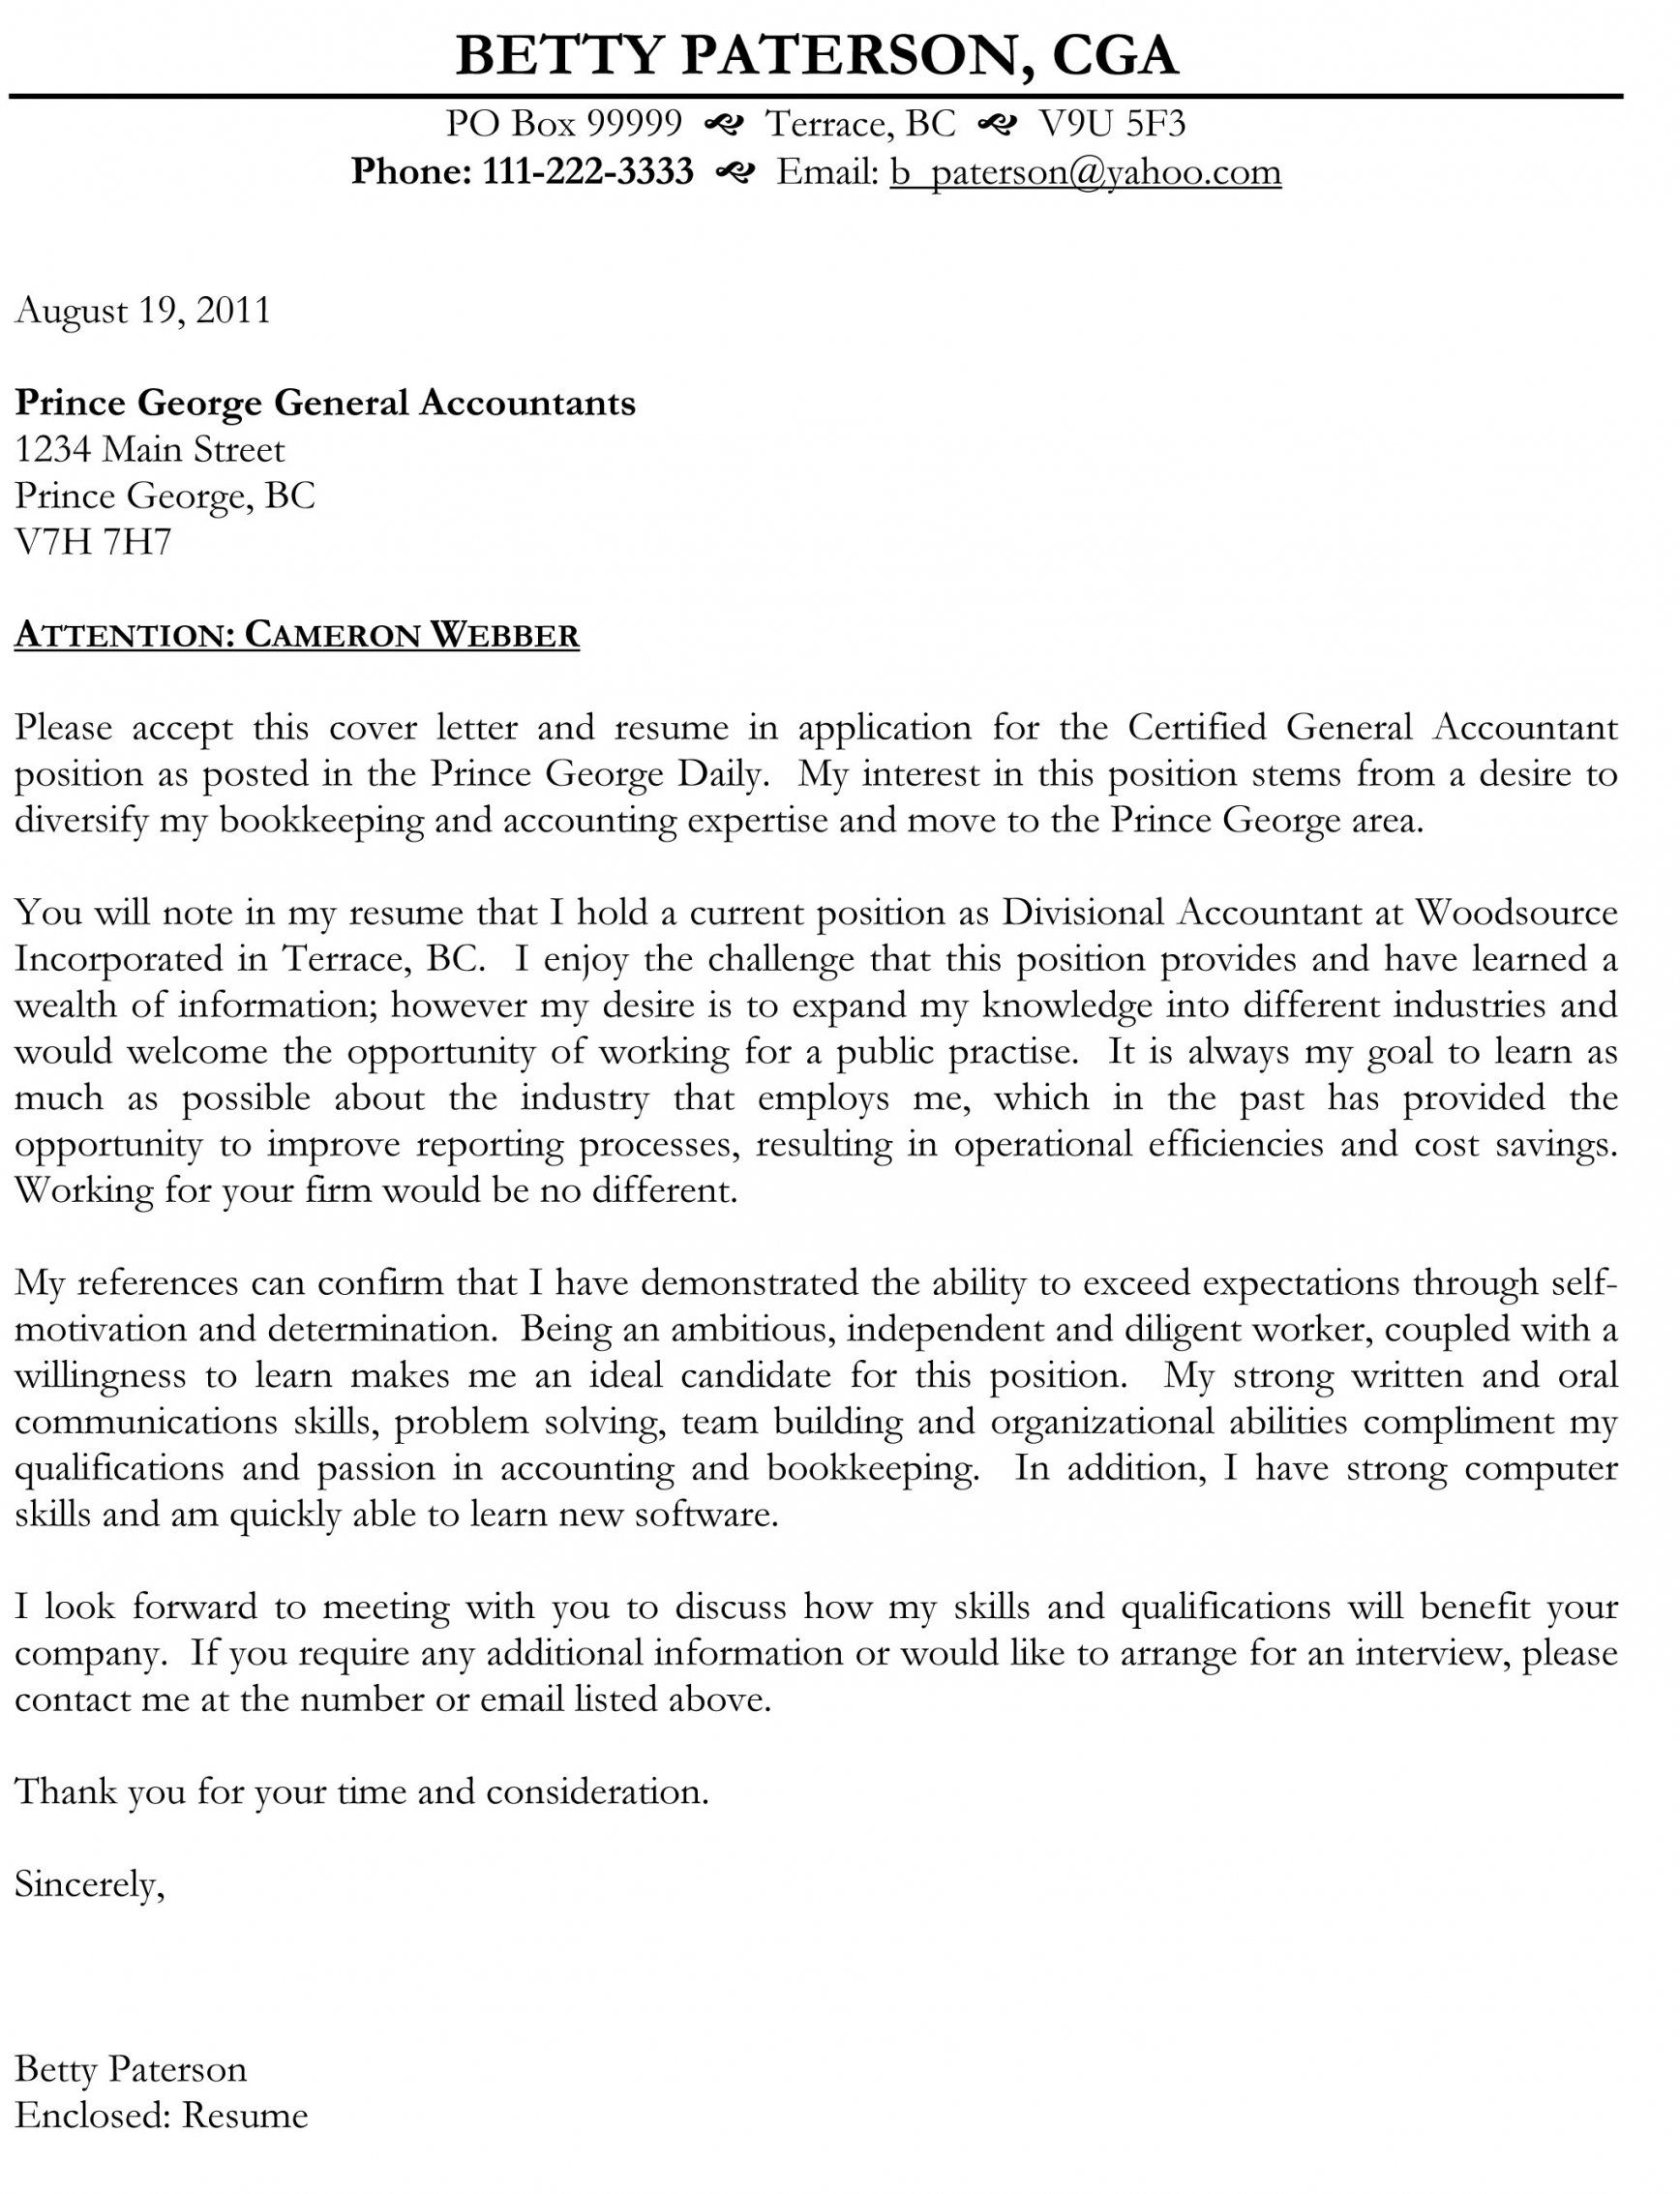 Cover Letter Template Government Of Canada  2Cover Letter Template  Cover letter template